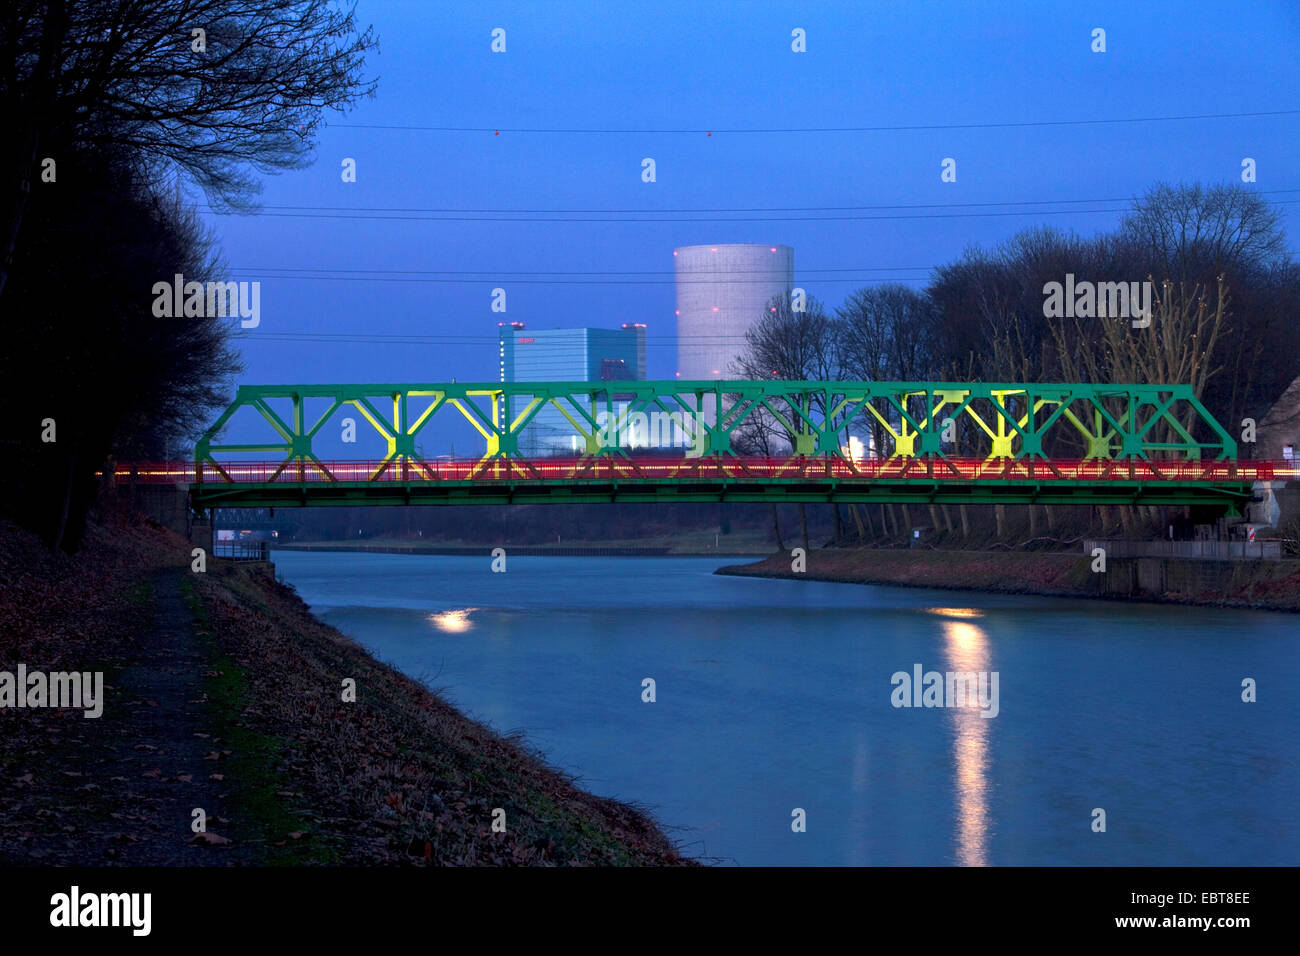 Dortmund�Ems Canal and Lucas bridge, coal power plant in background, Germany, North Rhine-Westphalia, Ruhr Area, - Stock Image